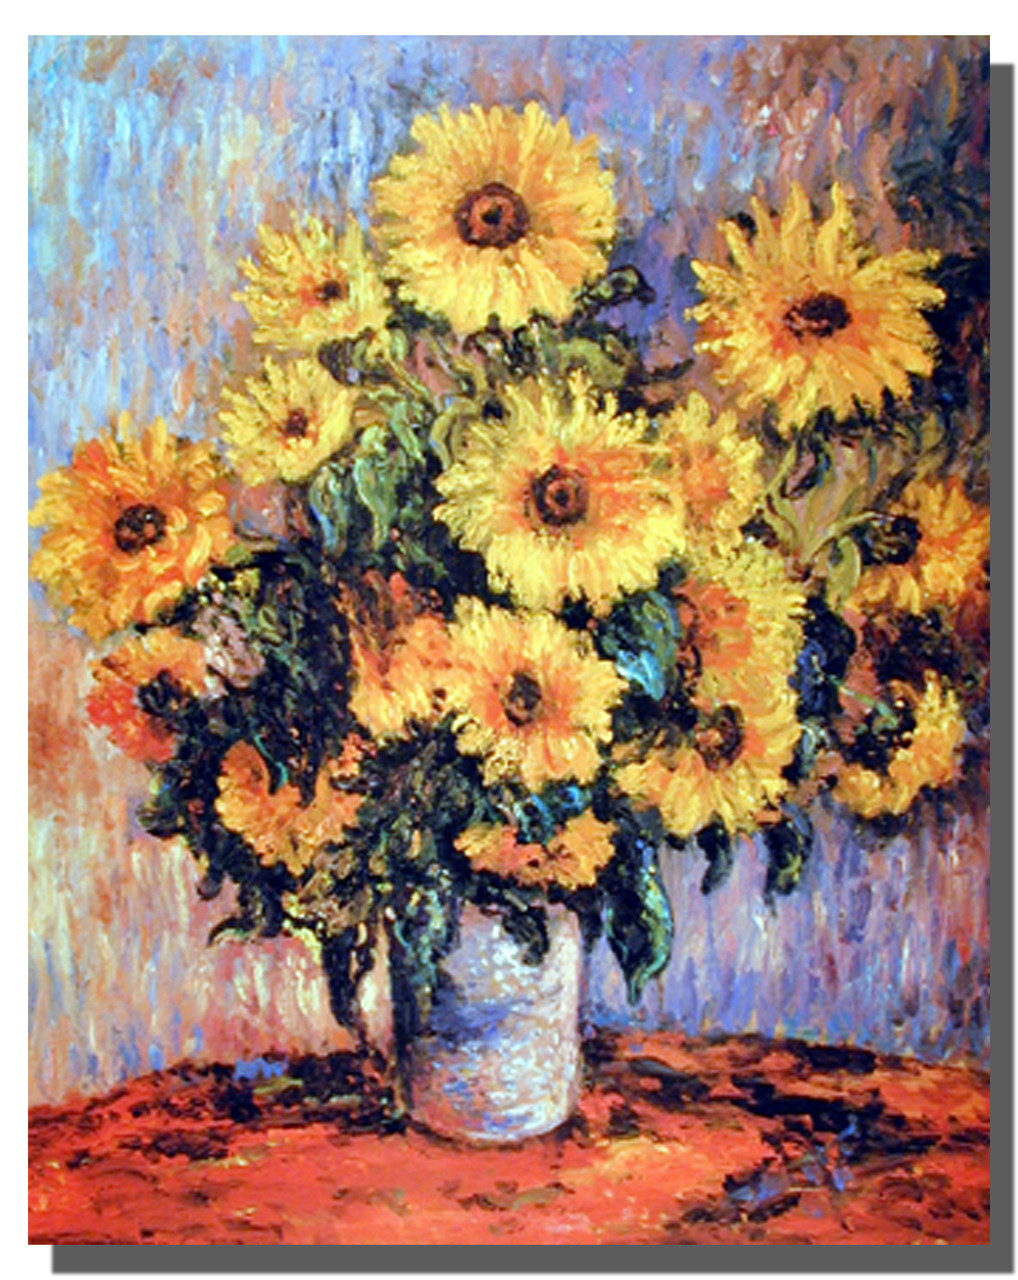 Claude Monet Sunflowers Flower Wall Decor Barnwood Framed Art Picture 19x23